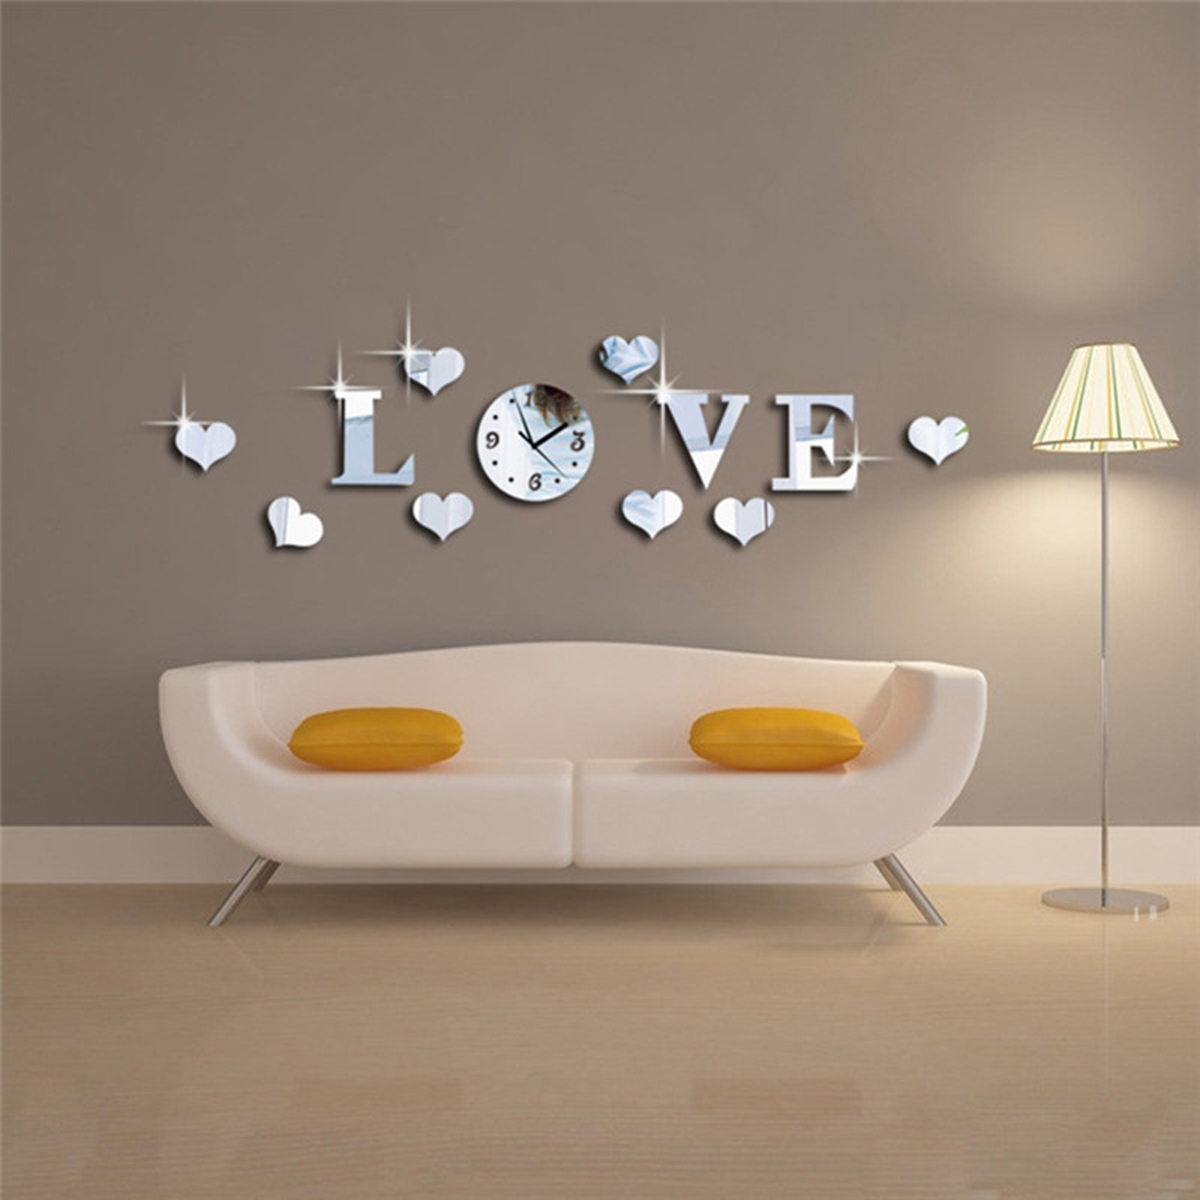 Removable-Mirror-Decal-Art-Mural-Wall-Stickers-Home-Decor-DIY-Room-Decoration thumbnail 11